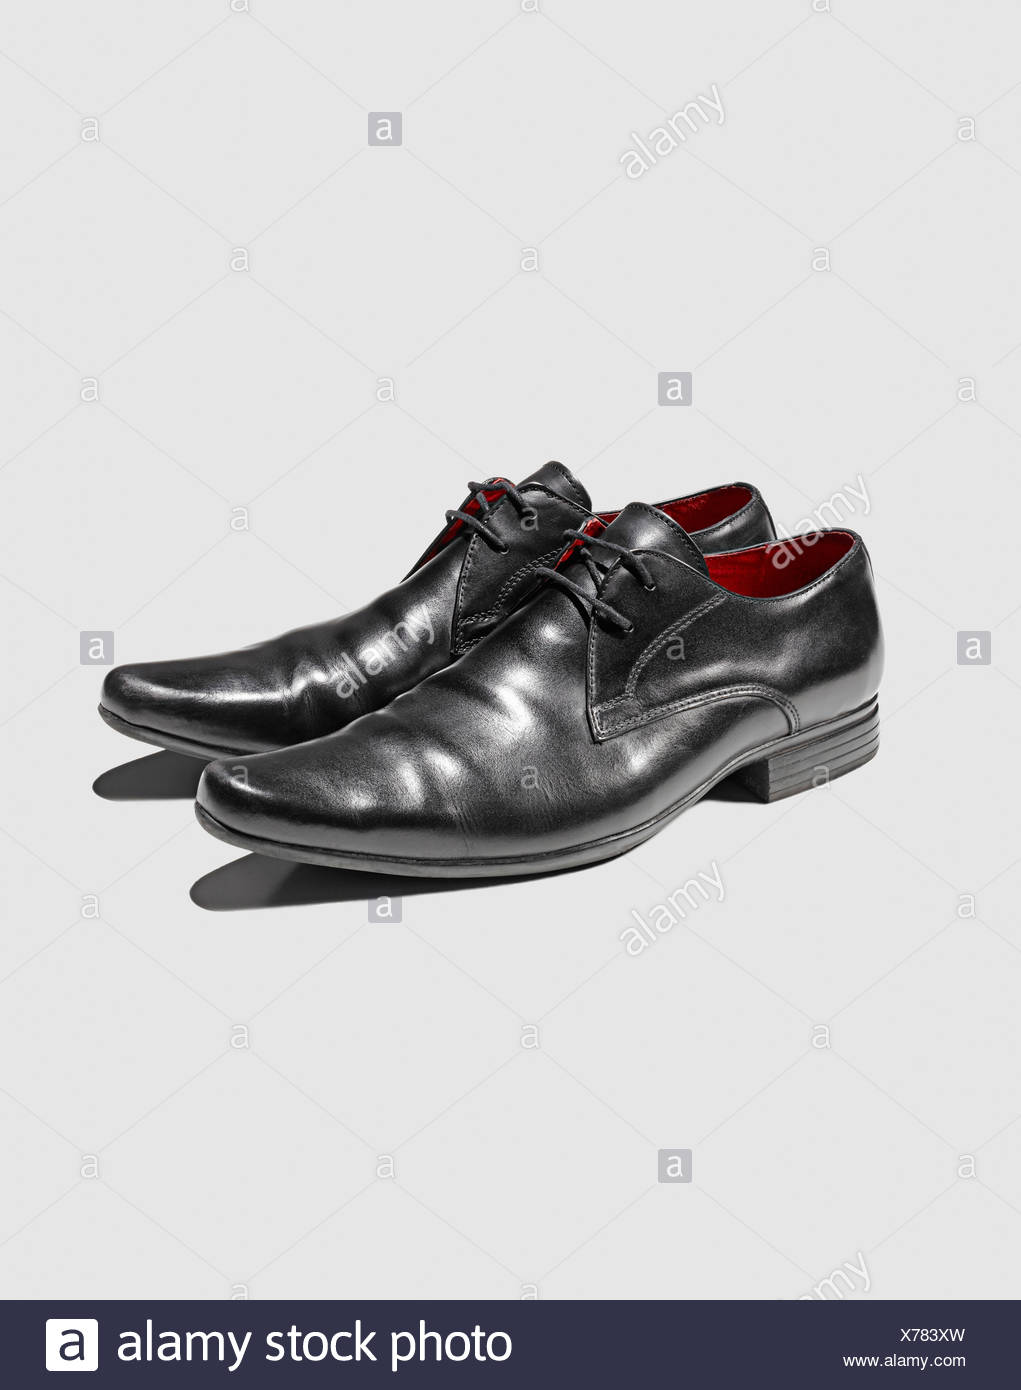 Close up of mans dress shoes - Stock Image